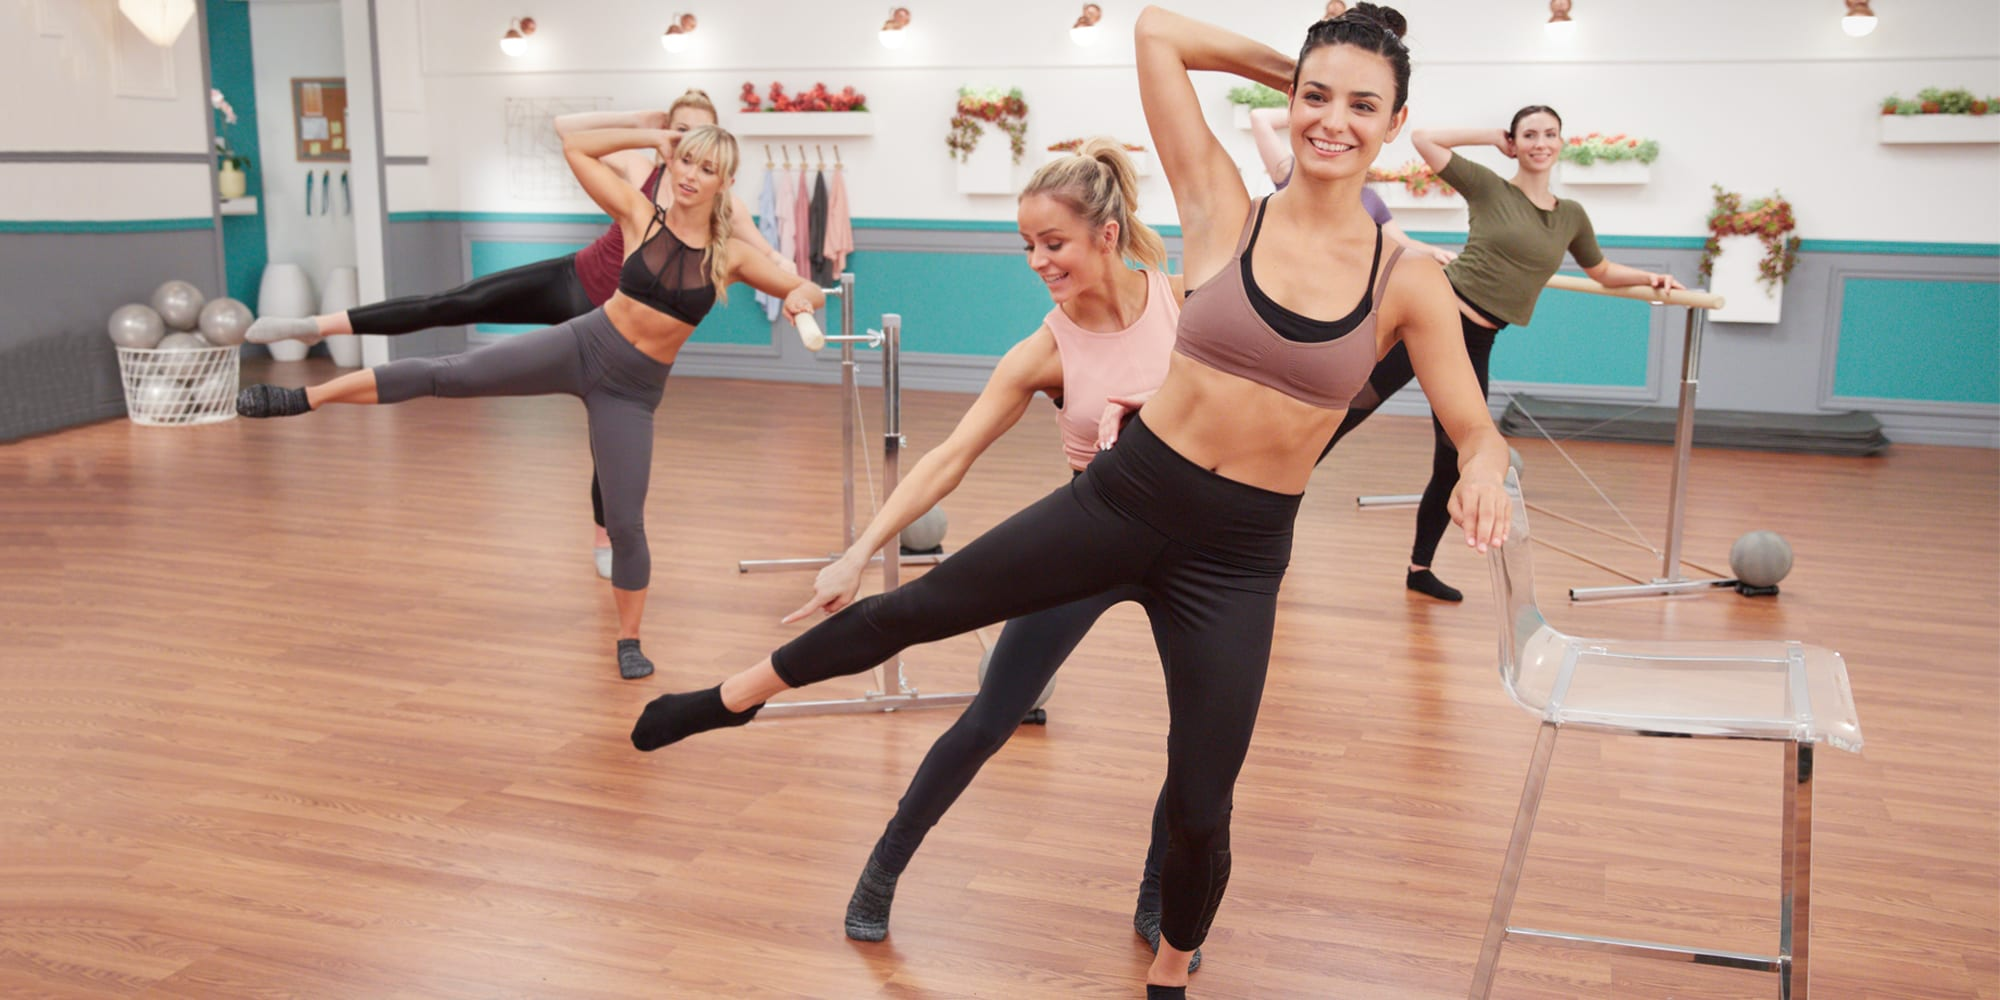 See the Results from Xtend Barre on Openfit!